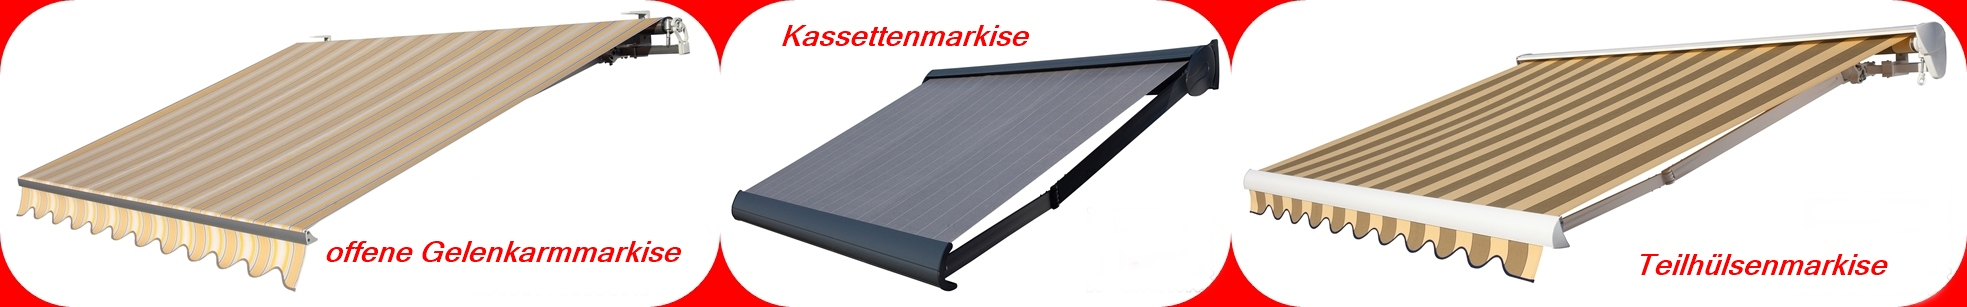 Markise-online-kaufen-Markisen-made-in-GermanyemeELVnMm4qBo